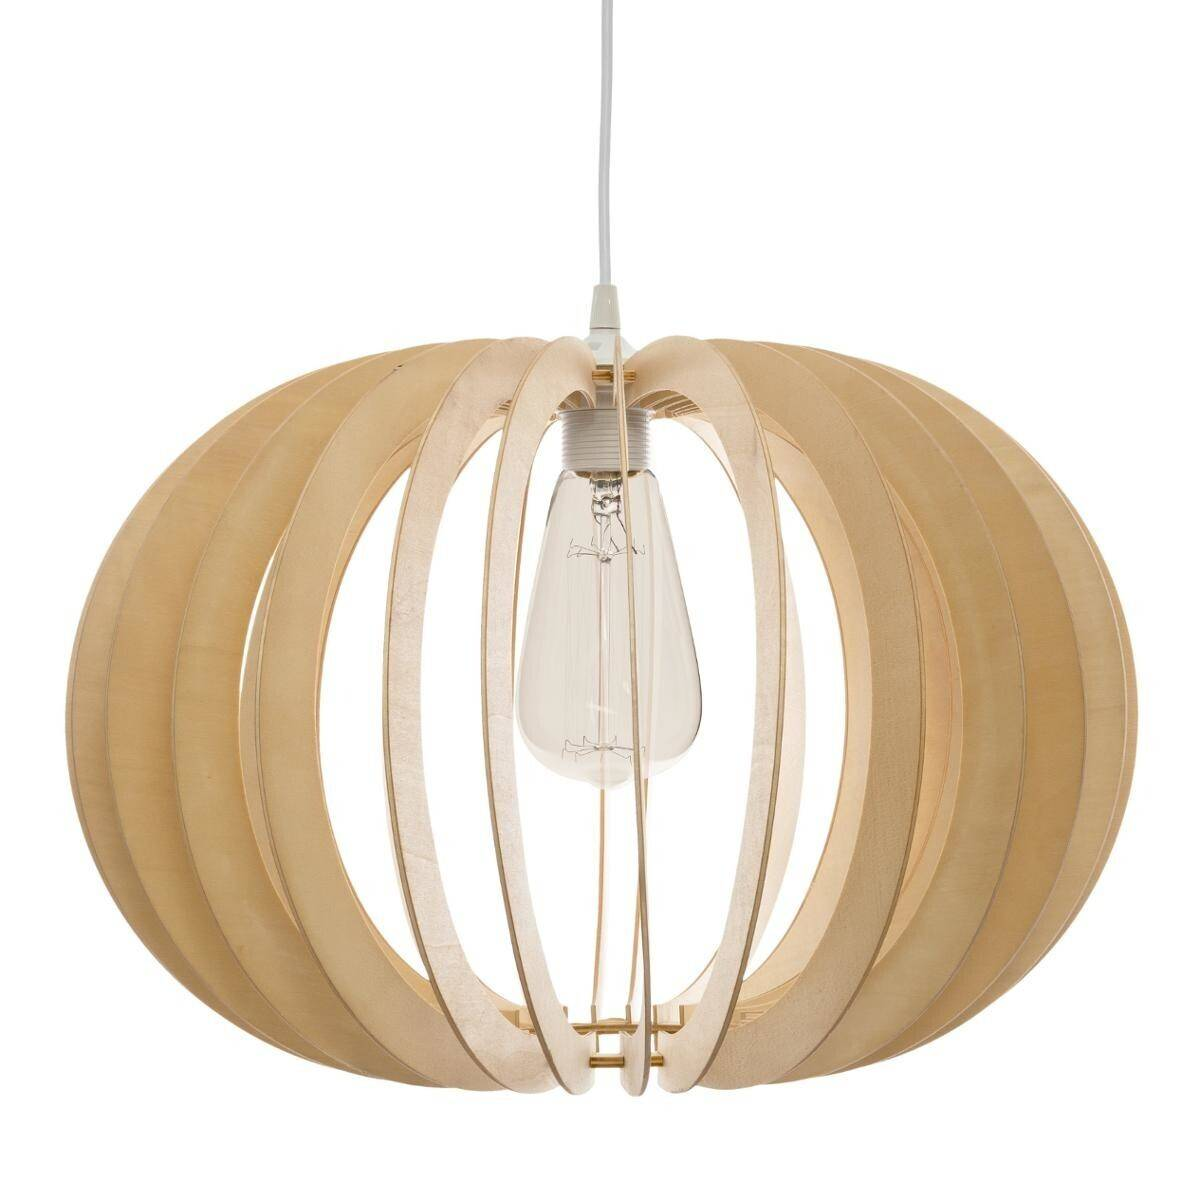 Atmosphera Suspension 'Shelby', bois D44 cm